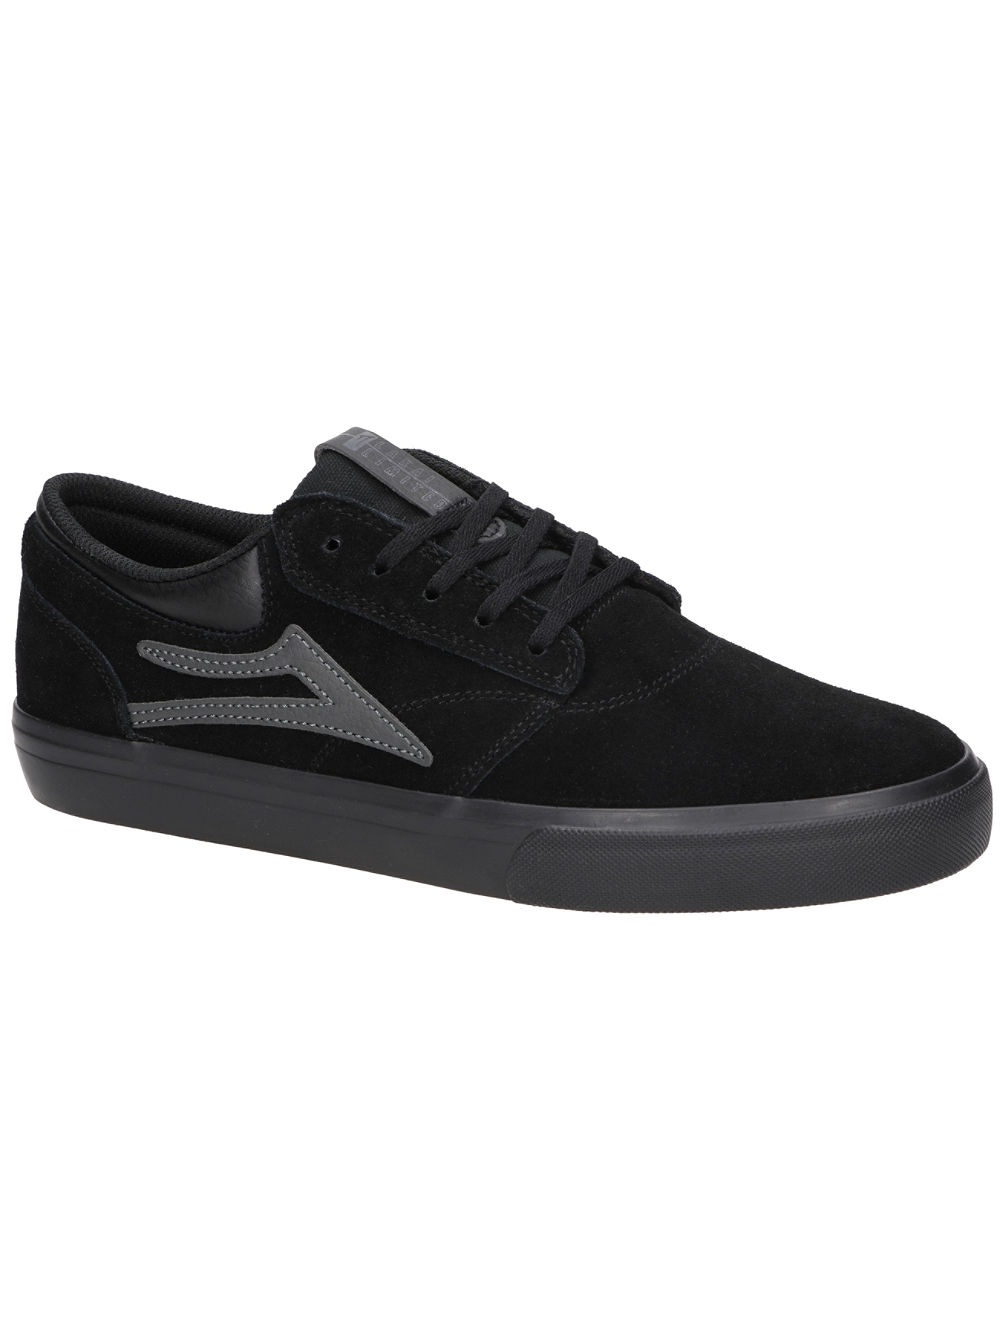 Griffin Skate Shoes